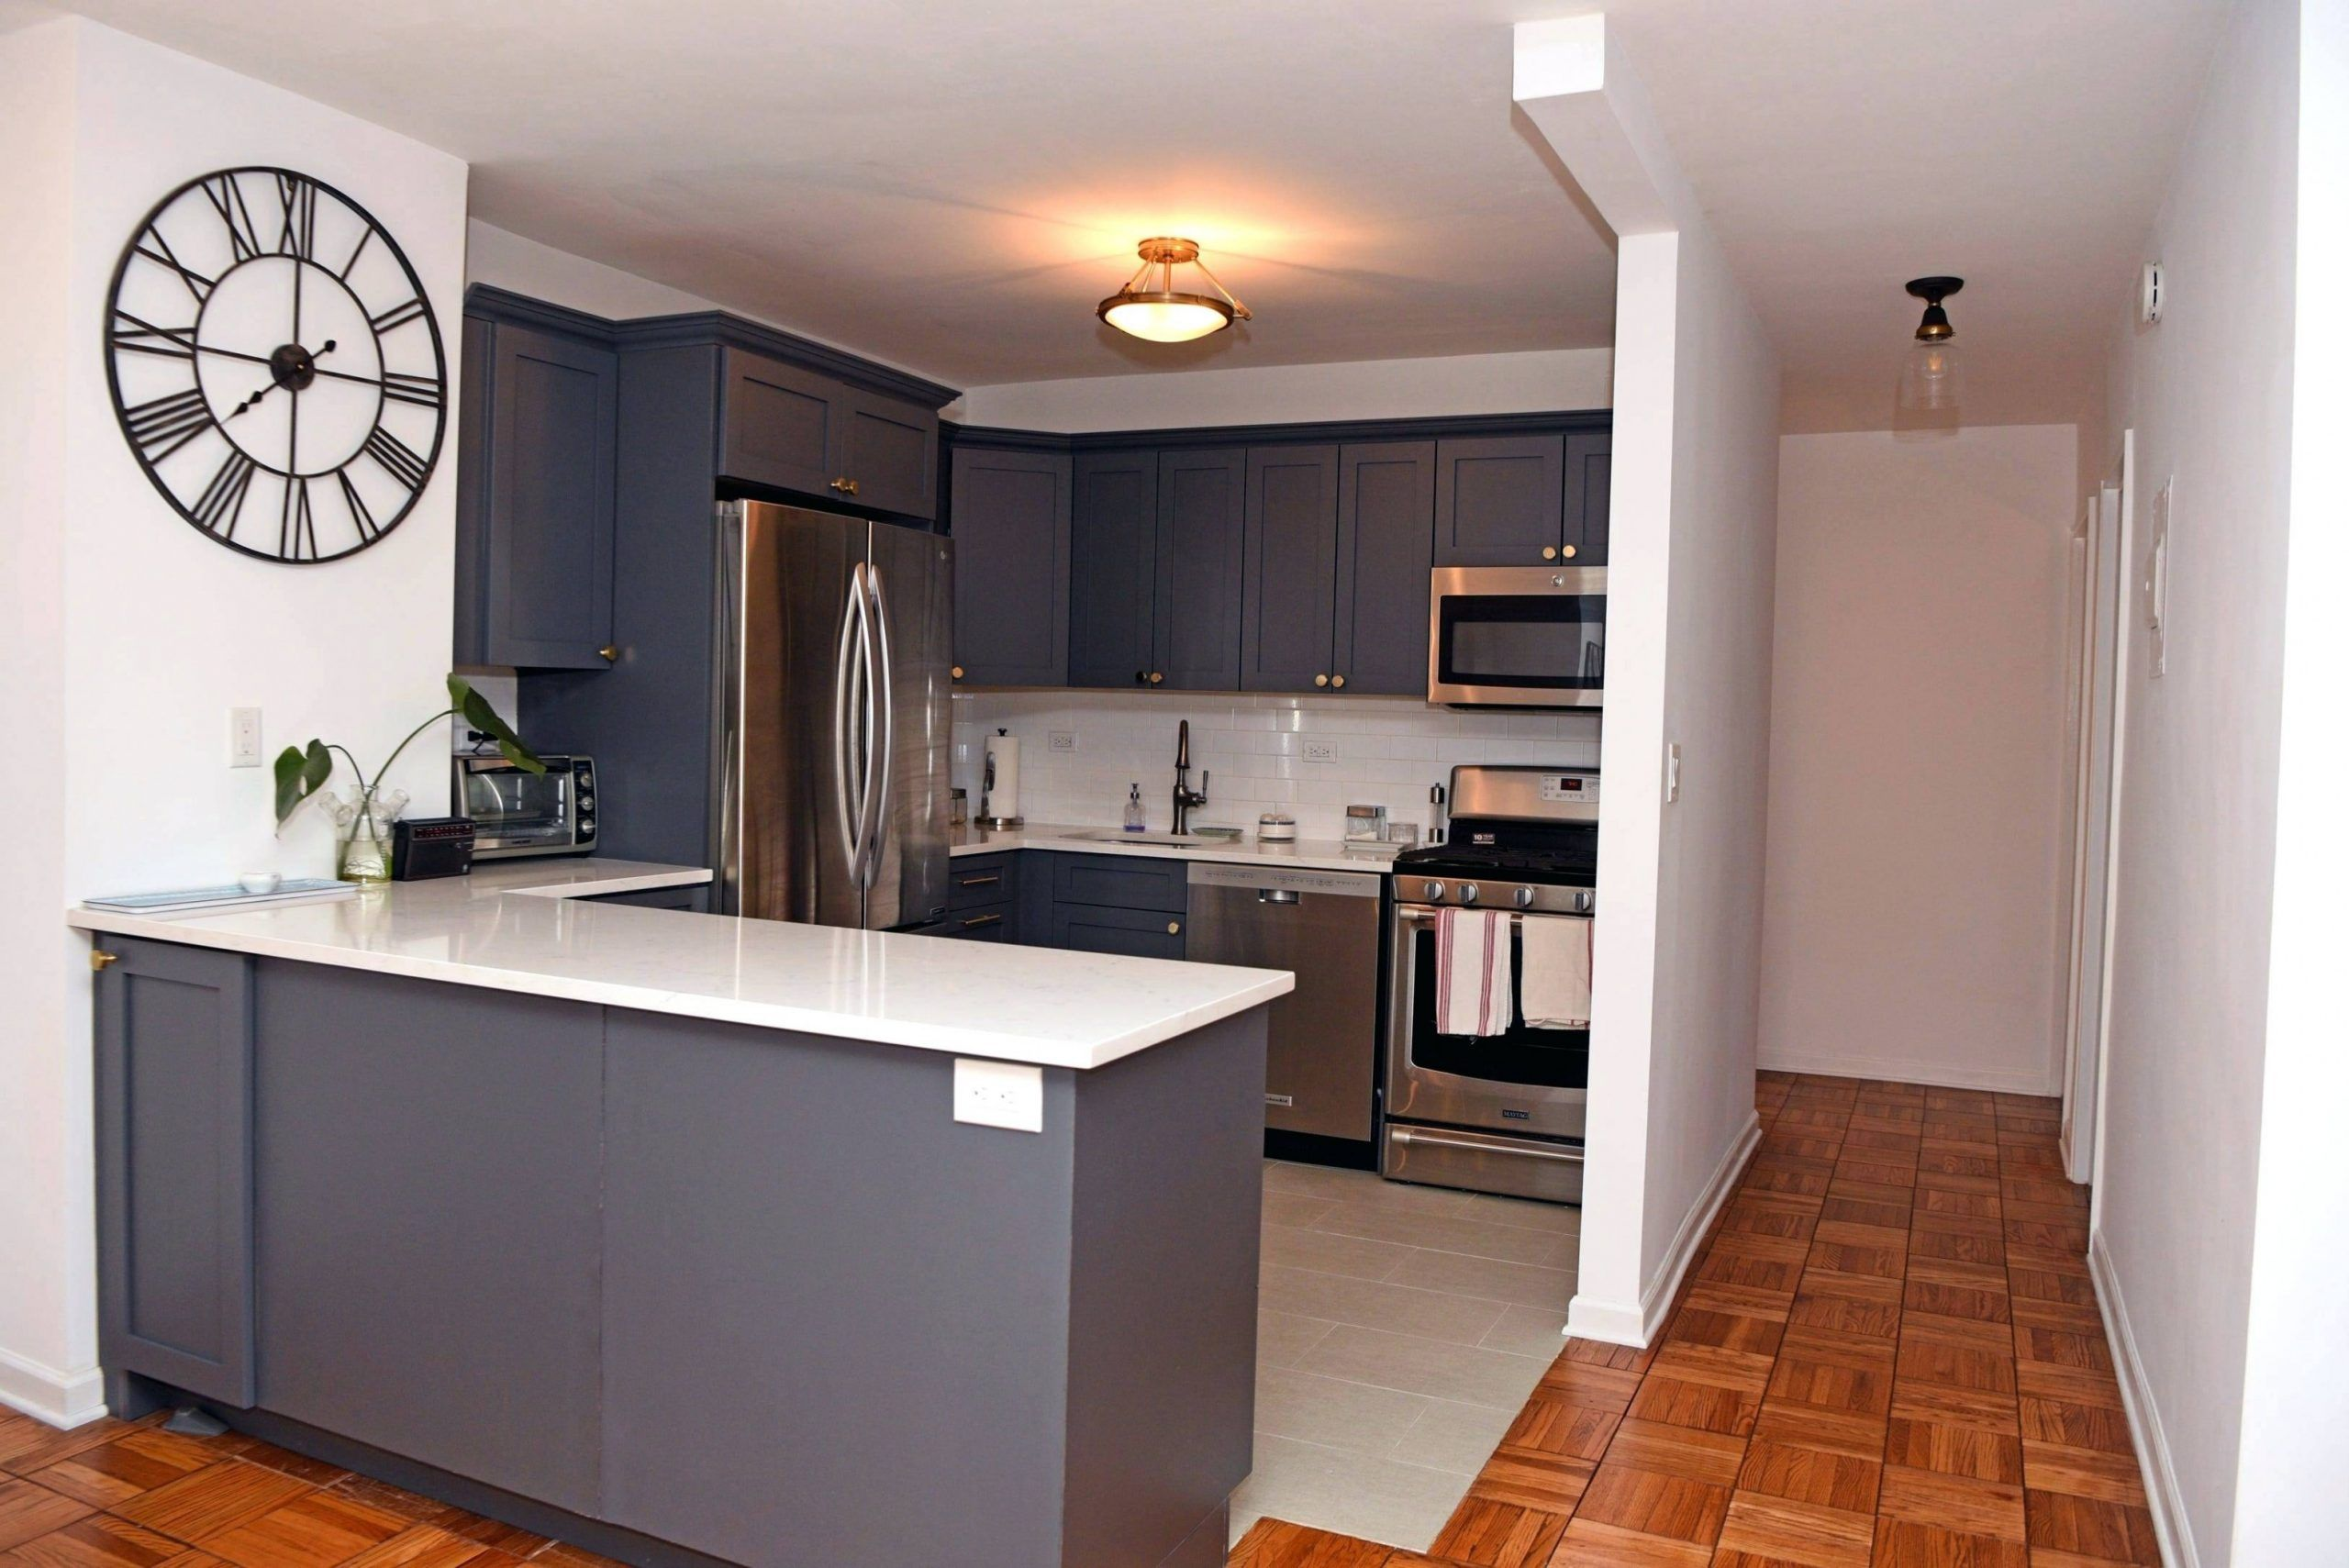 Kitchen Remodeling Rockland County Ny In 2020 Kitchen Remodel Kitchen Renovation Remodel